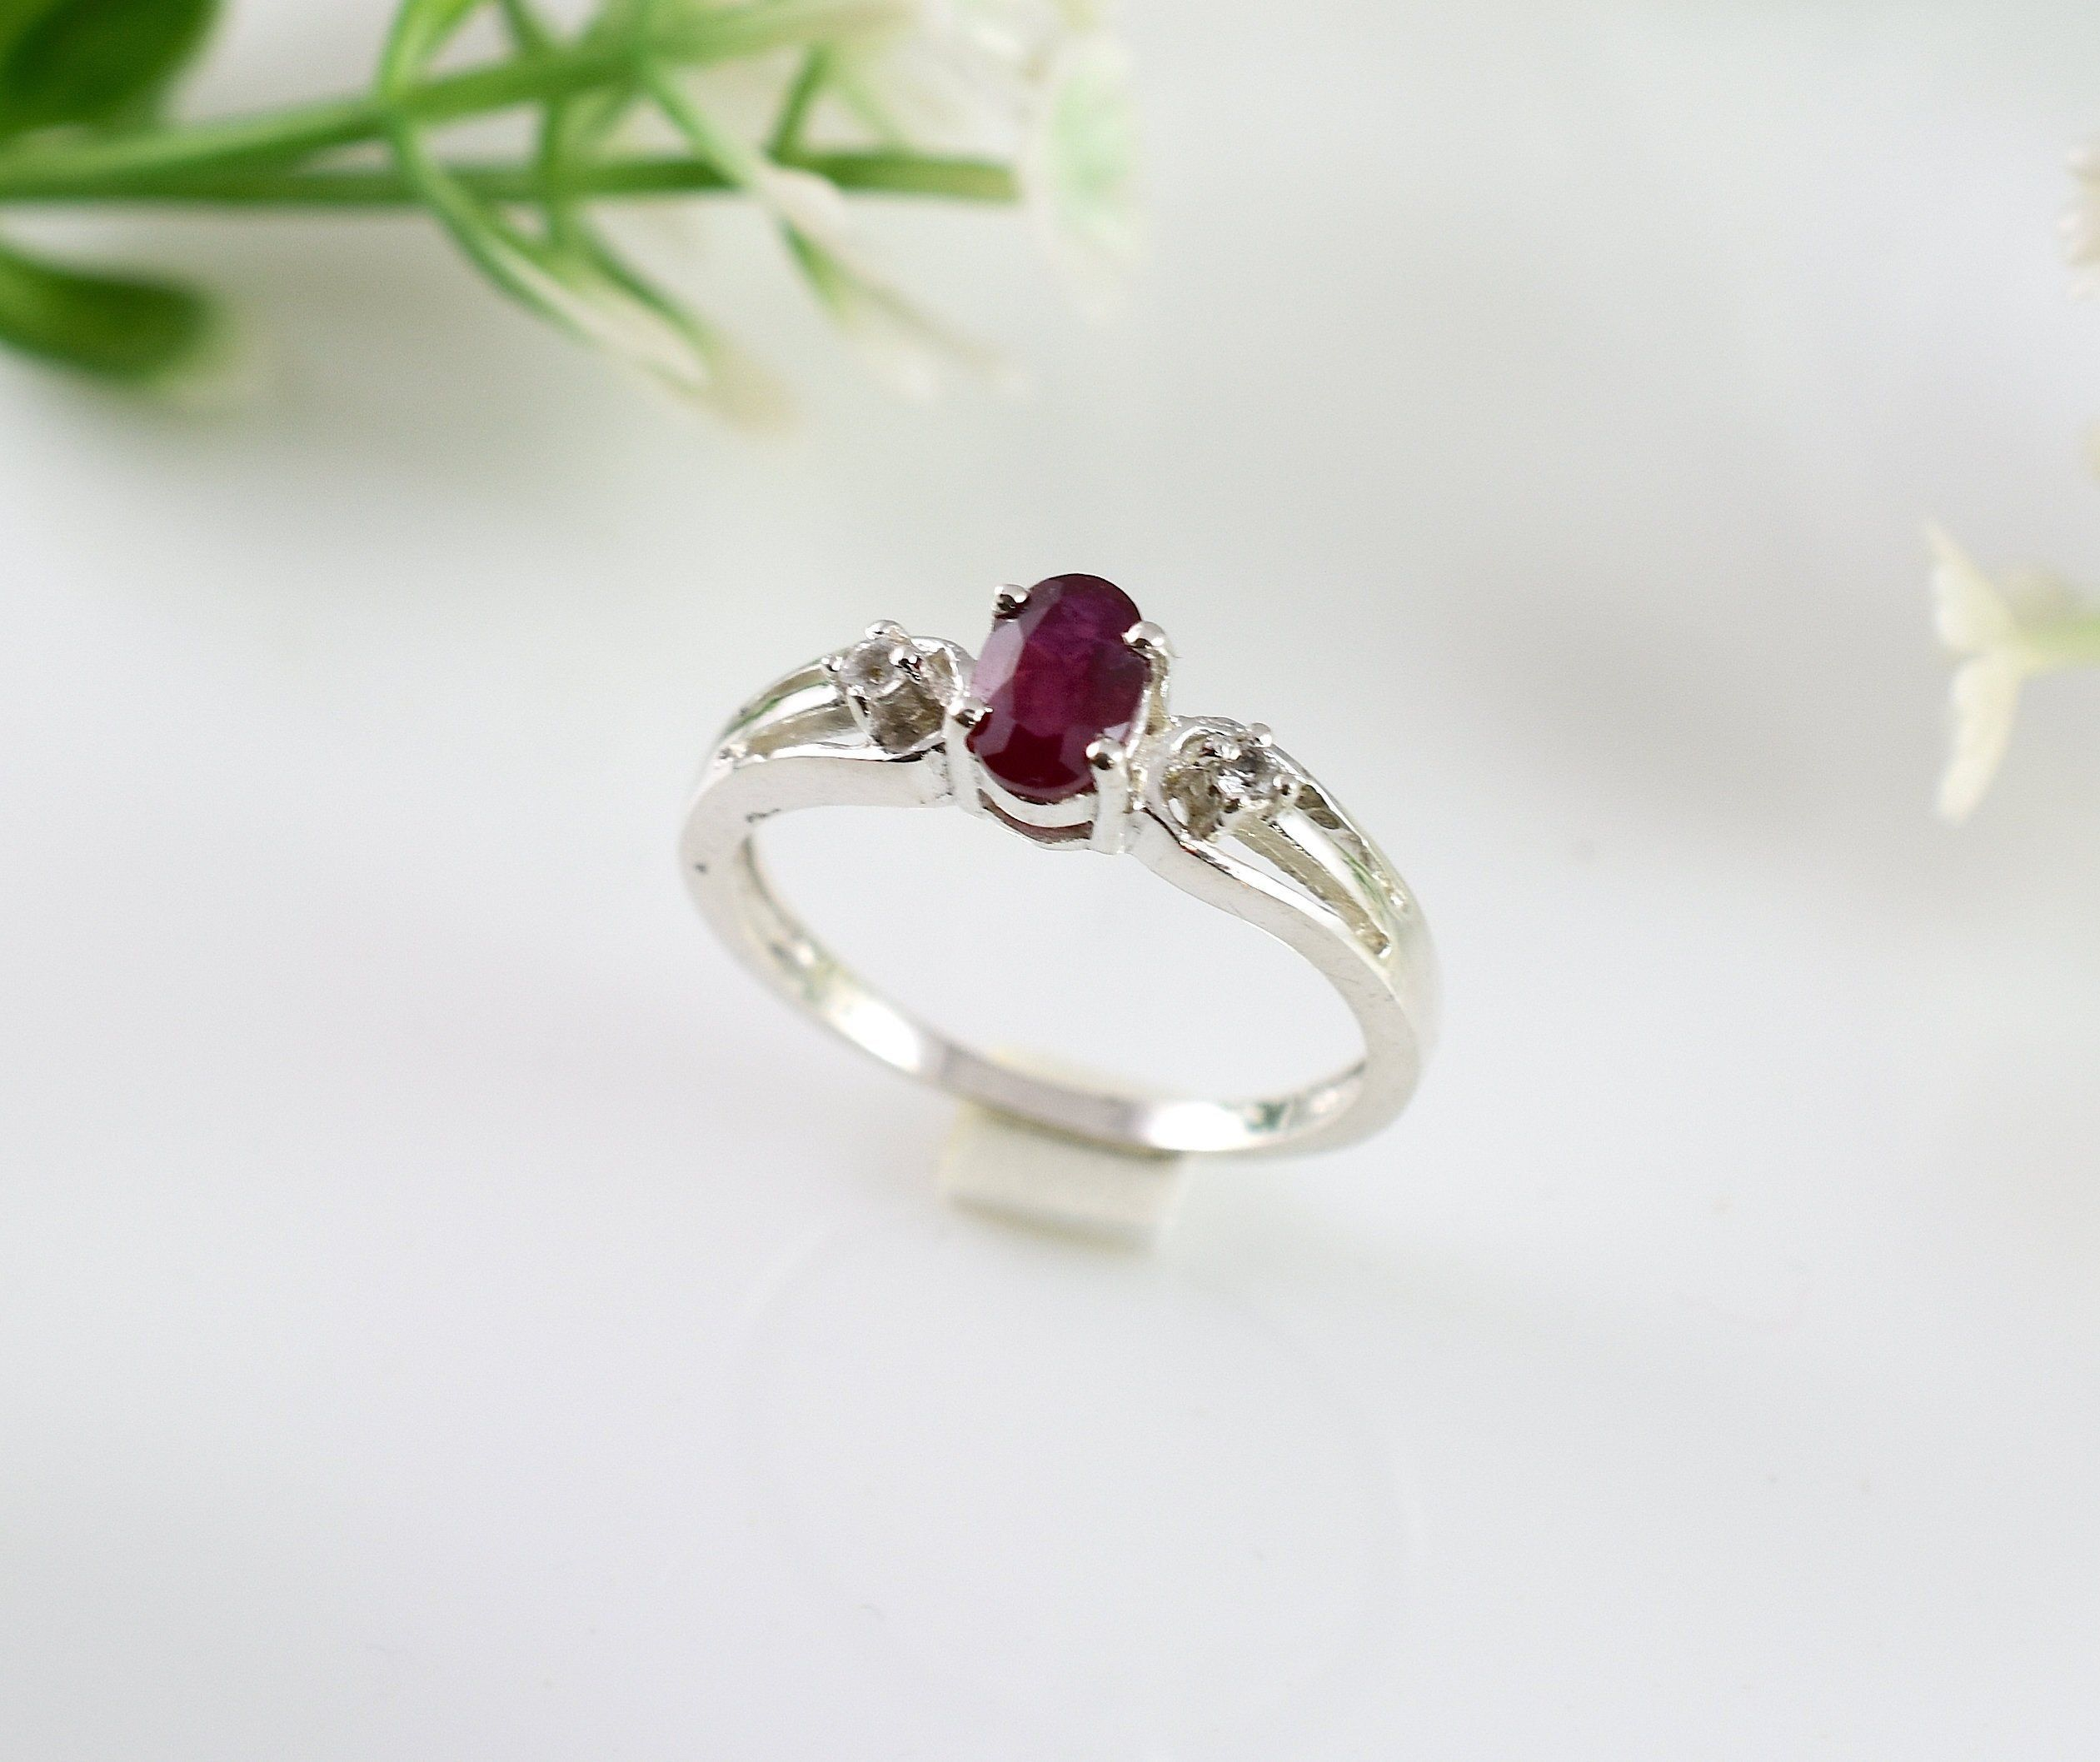 Channel Setting Ruby Blue Sapphire Ring Band 925 Sterling Silver Statement Ring Promise Ring Anniversary Gift Gift For Her